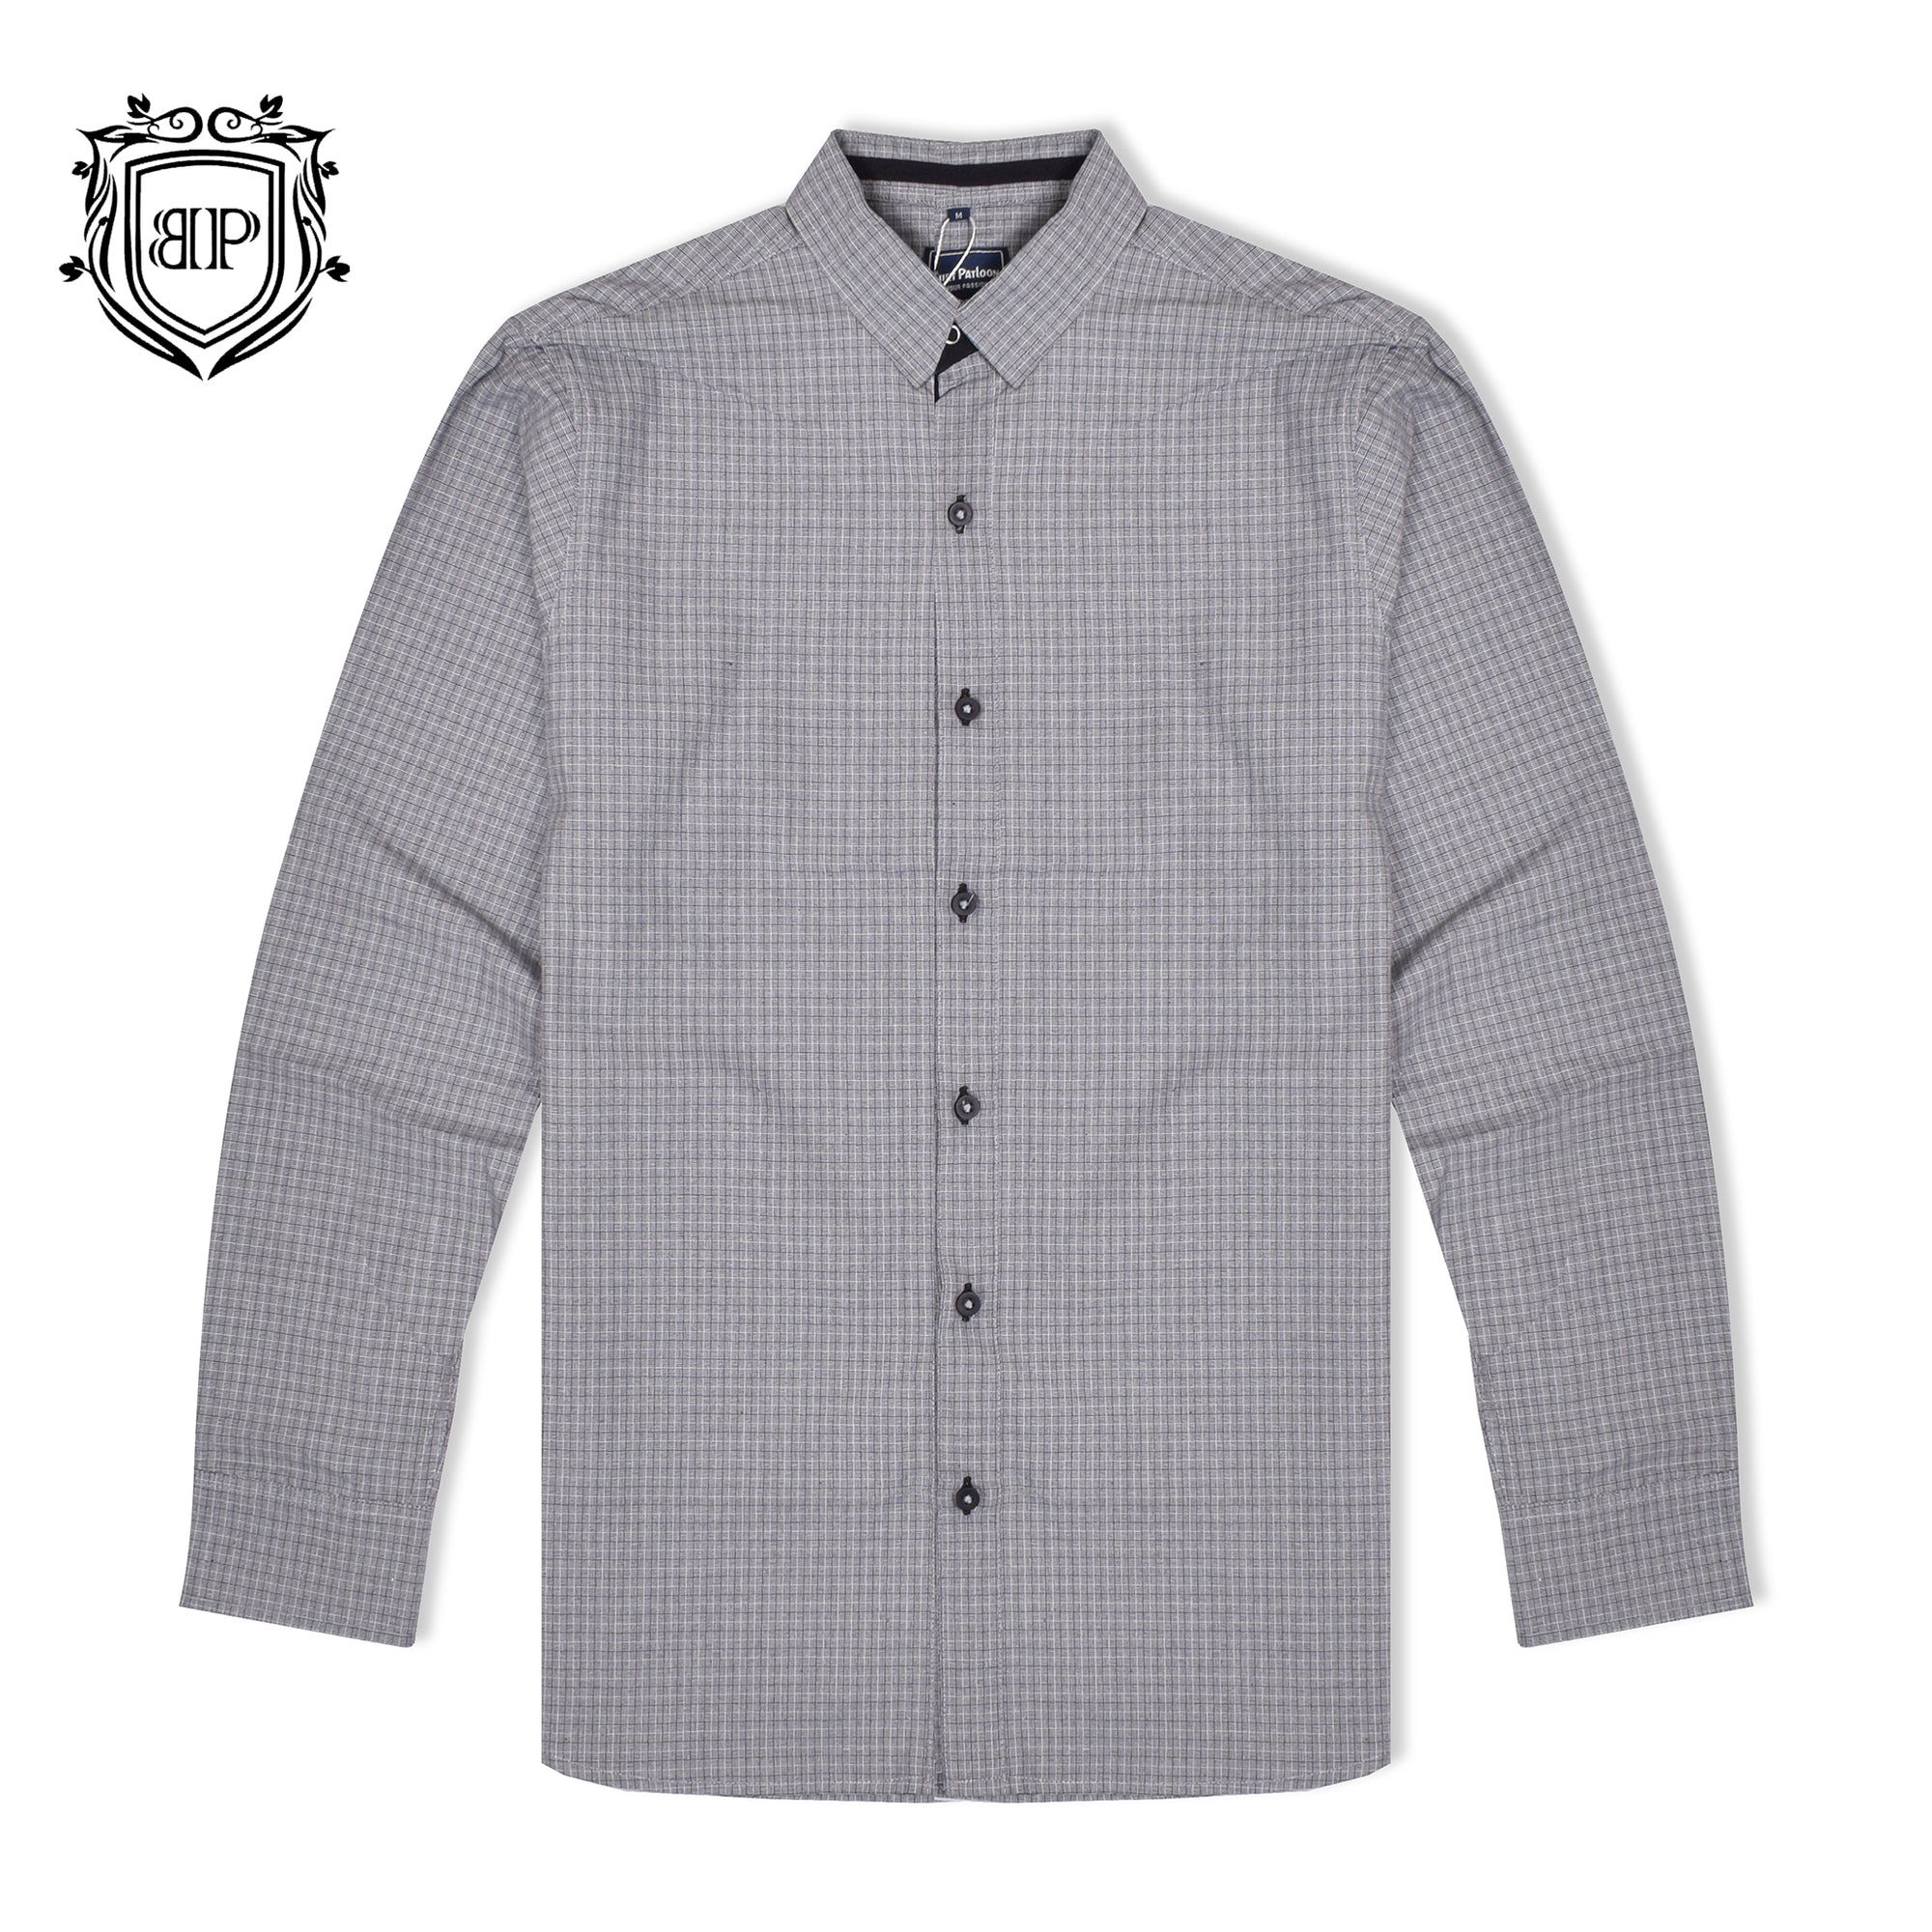 brandsego - Bushirt Patloon Casual Shirt For Men-Check-BP003